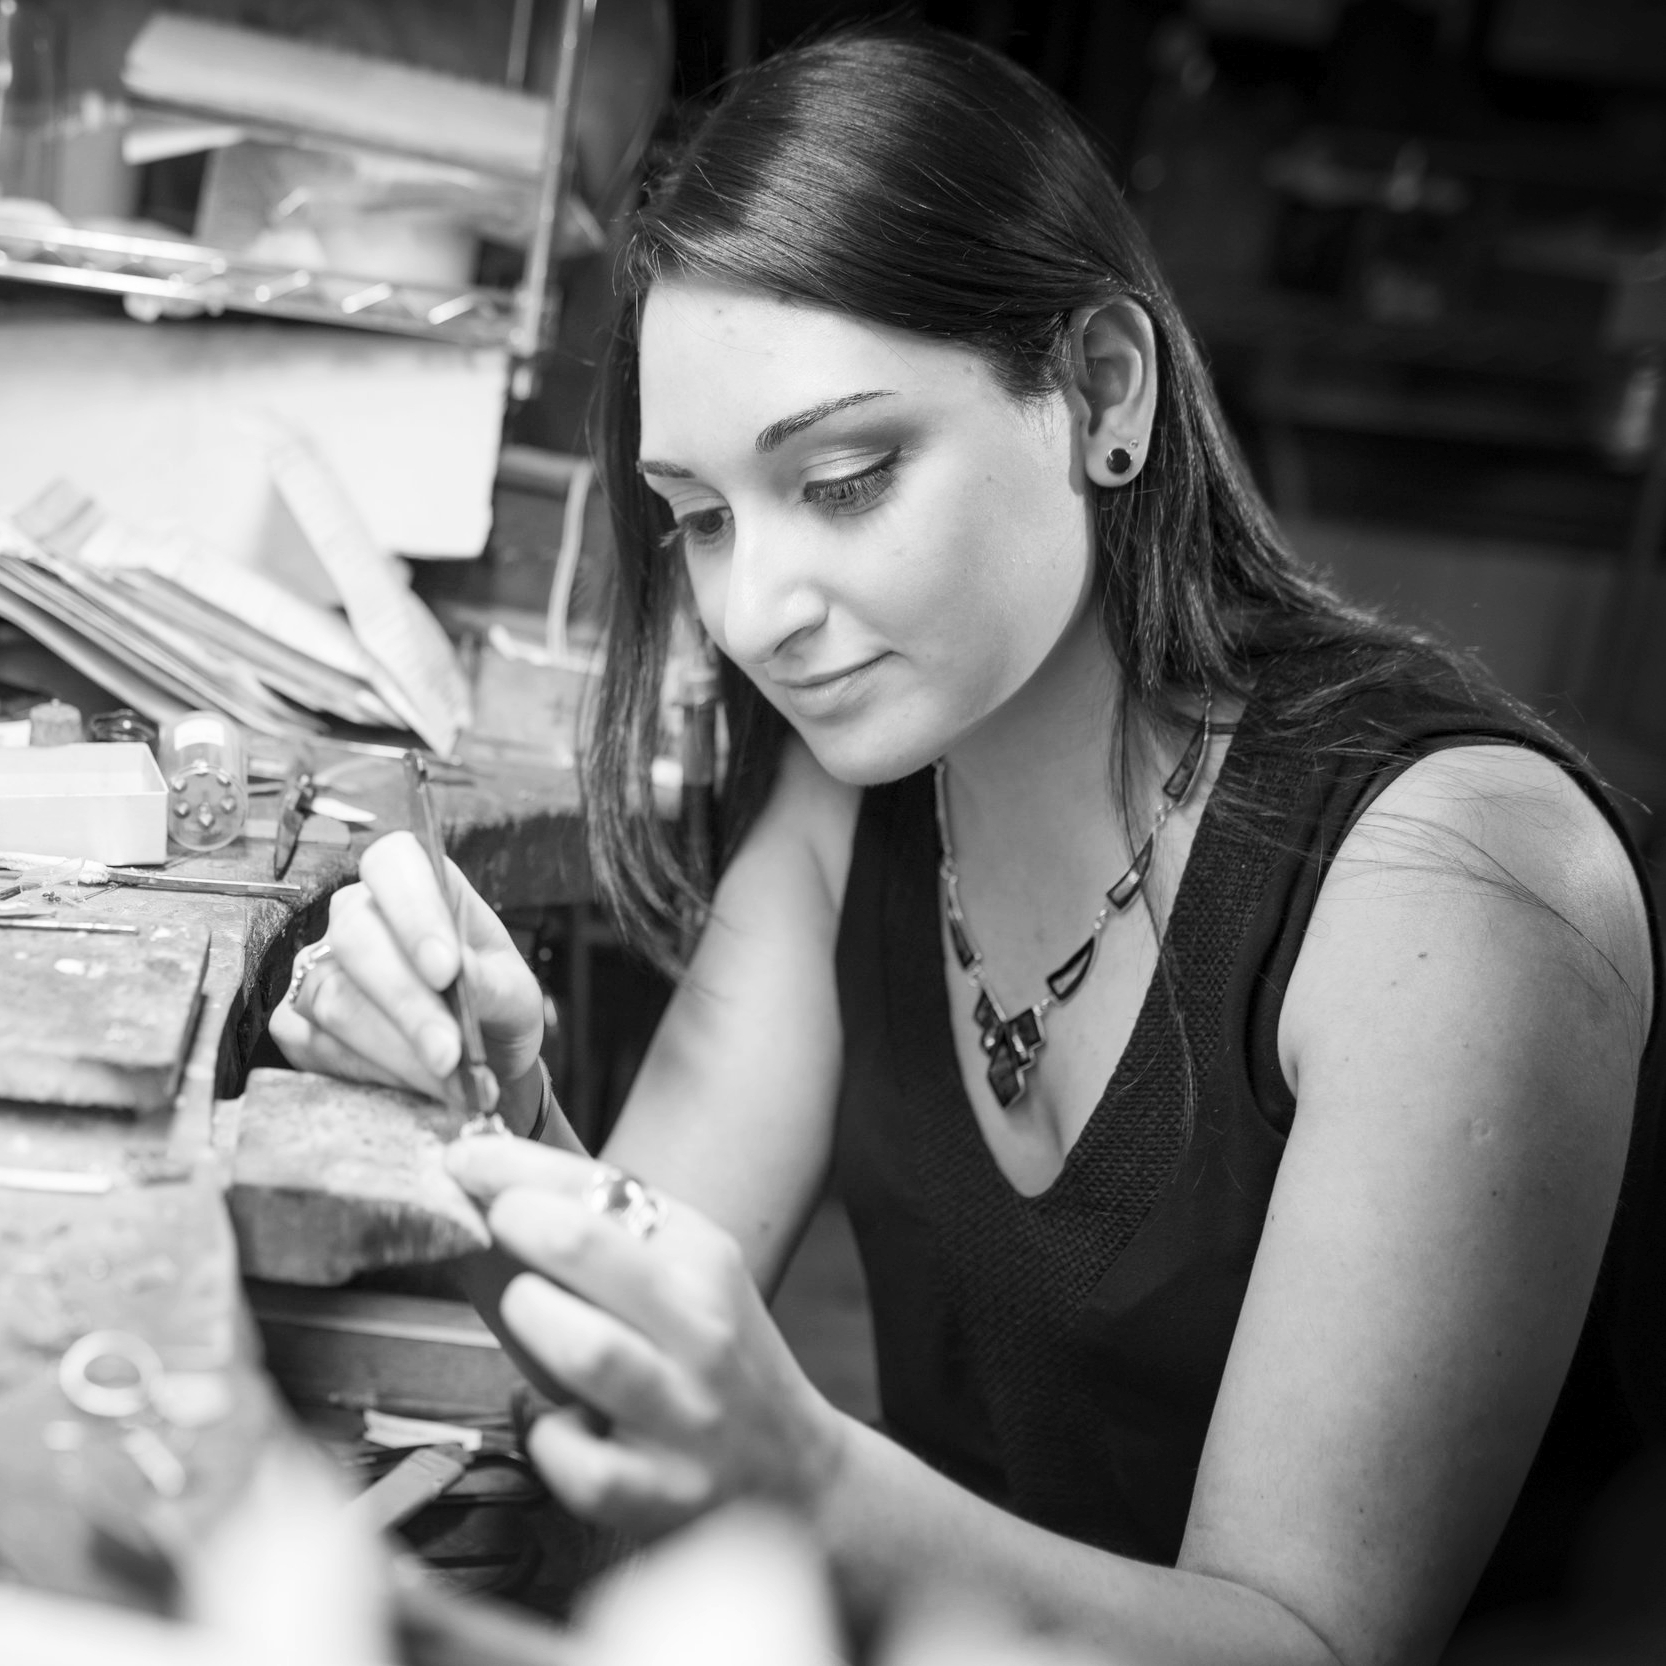 """Ana Tkabladze, Manager   Originally from Georgia (the country, not the state), Ana moved to Virginia as a child and has lived in the DC region ever since. As the daughter of two accomplished artists, Ana grew up surrounded by an array of creative outlets but she was drawn to the craft of jewelry making at a young age. Now a full-blown """"obsessive addict"""", she has studied enameling, metalsmithing, and works with our CAD software for jewelry design. Ana travels extensively (when she can) and will bring you delicious Georgian food (if you ask nicely)."""